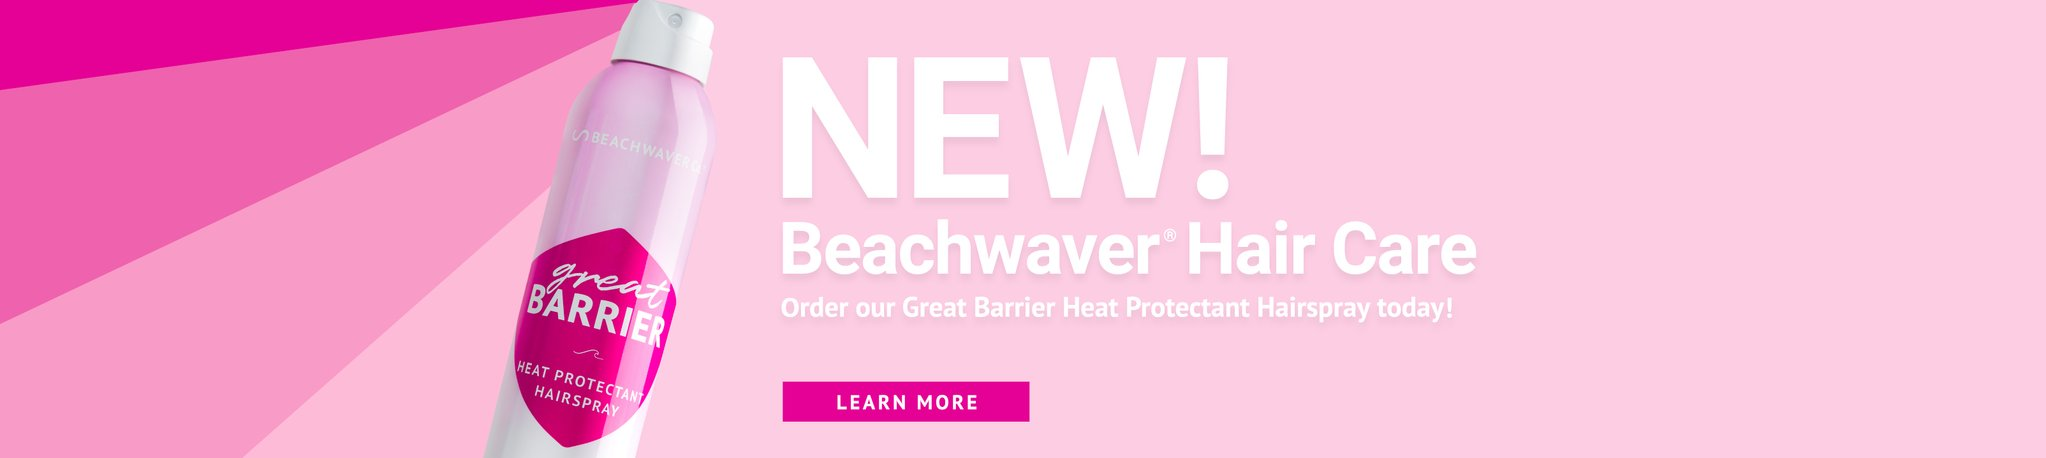 NEW! Beachwaver Hair Care! Order our Great Barrier Heat Protectant Hairspray today! Learn more...